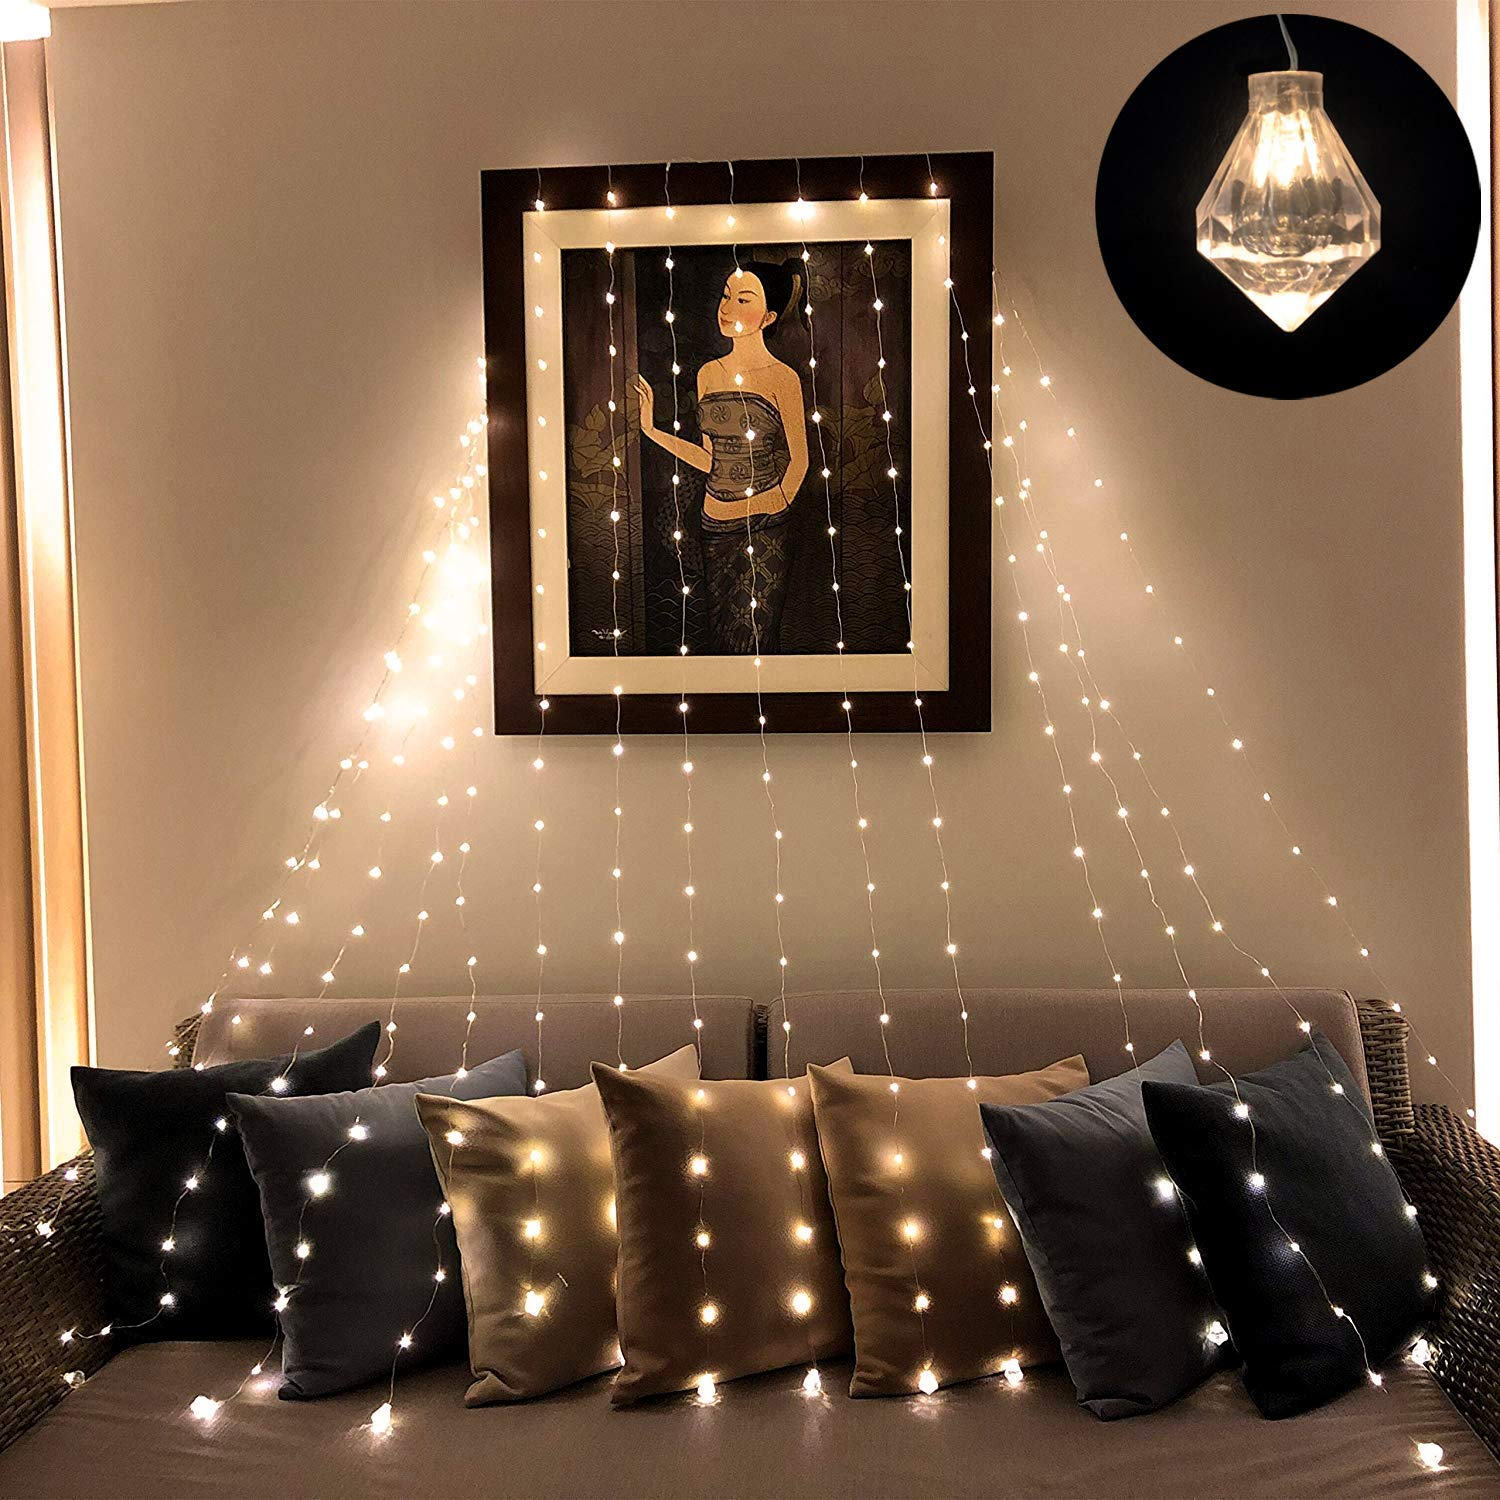 Linkind Copper Wire Fairy String Lights, Curtain Light with Diamond Shape Pendants, 8mode Wall Decorations, Power Supply Low Voltage Safe led Lights.